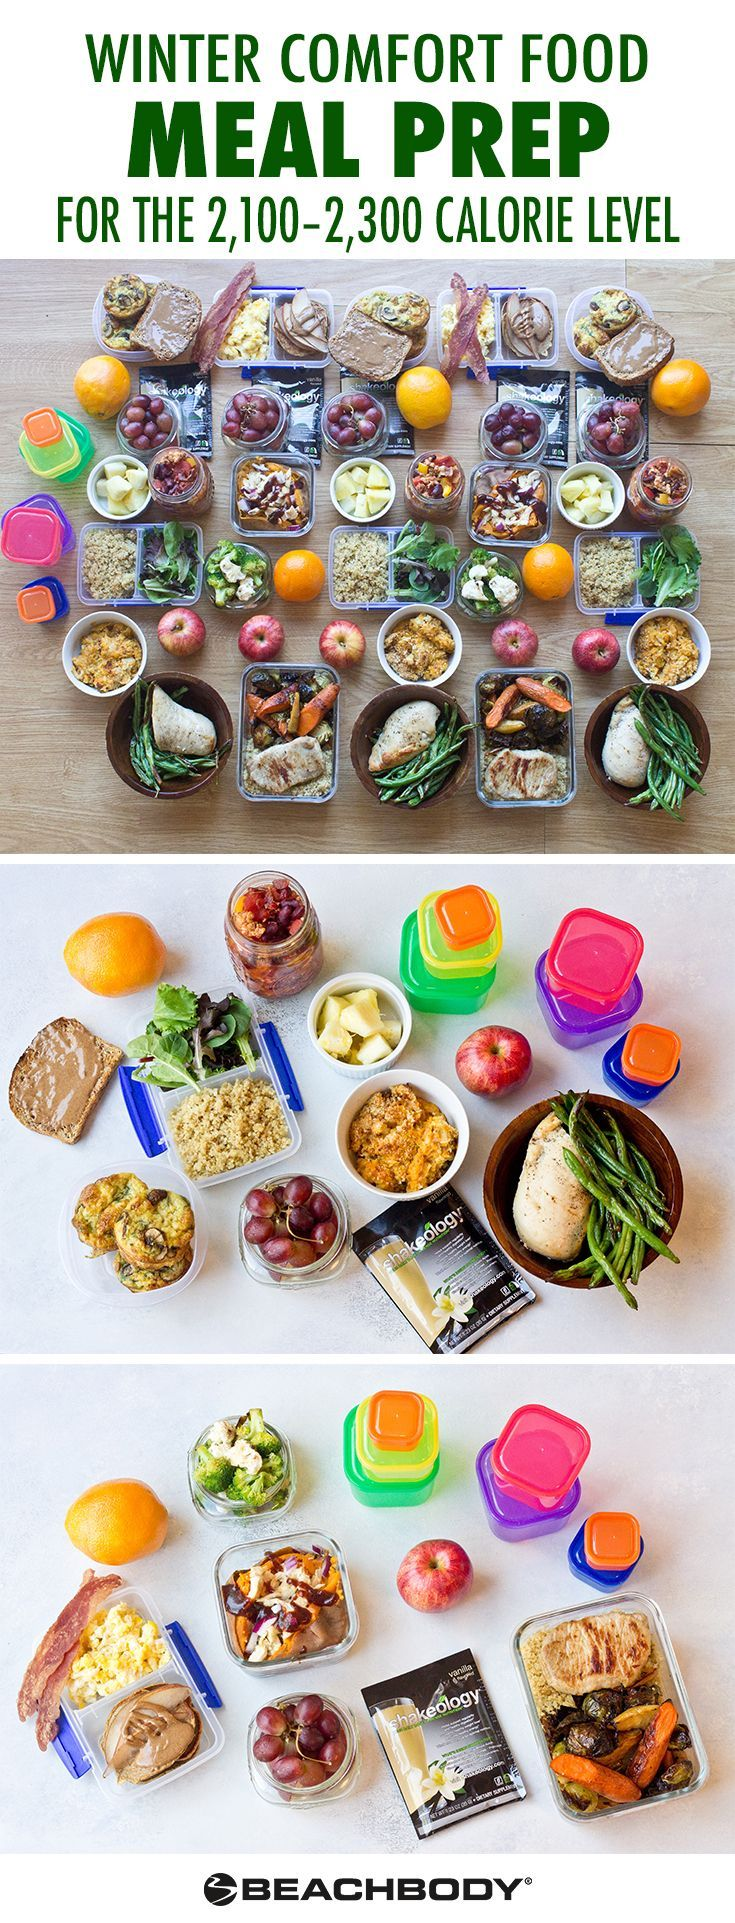 this Step-by-Step Guide to Make a Hearty Winter Meal Prep Winter is here and it brings with it excitement for the holidays, nights by the fire, and weekends in the mountains! Indulge in the splendors of the season while sticking to your healthier habits with this hearty winter meal prep menu filled with comfort foods. Instead o